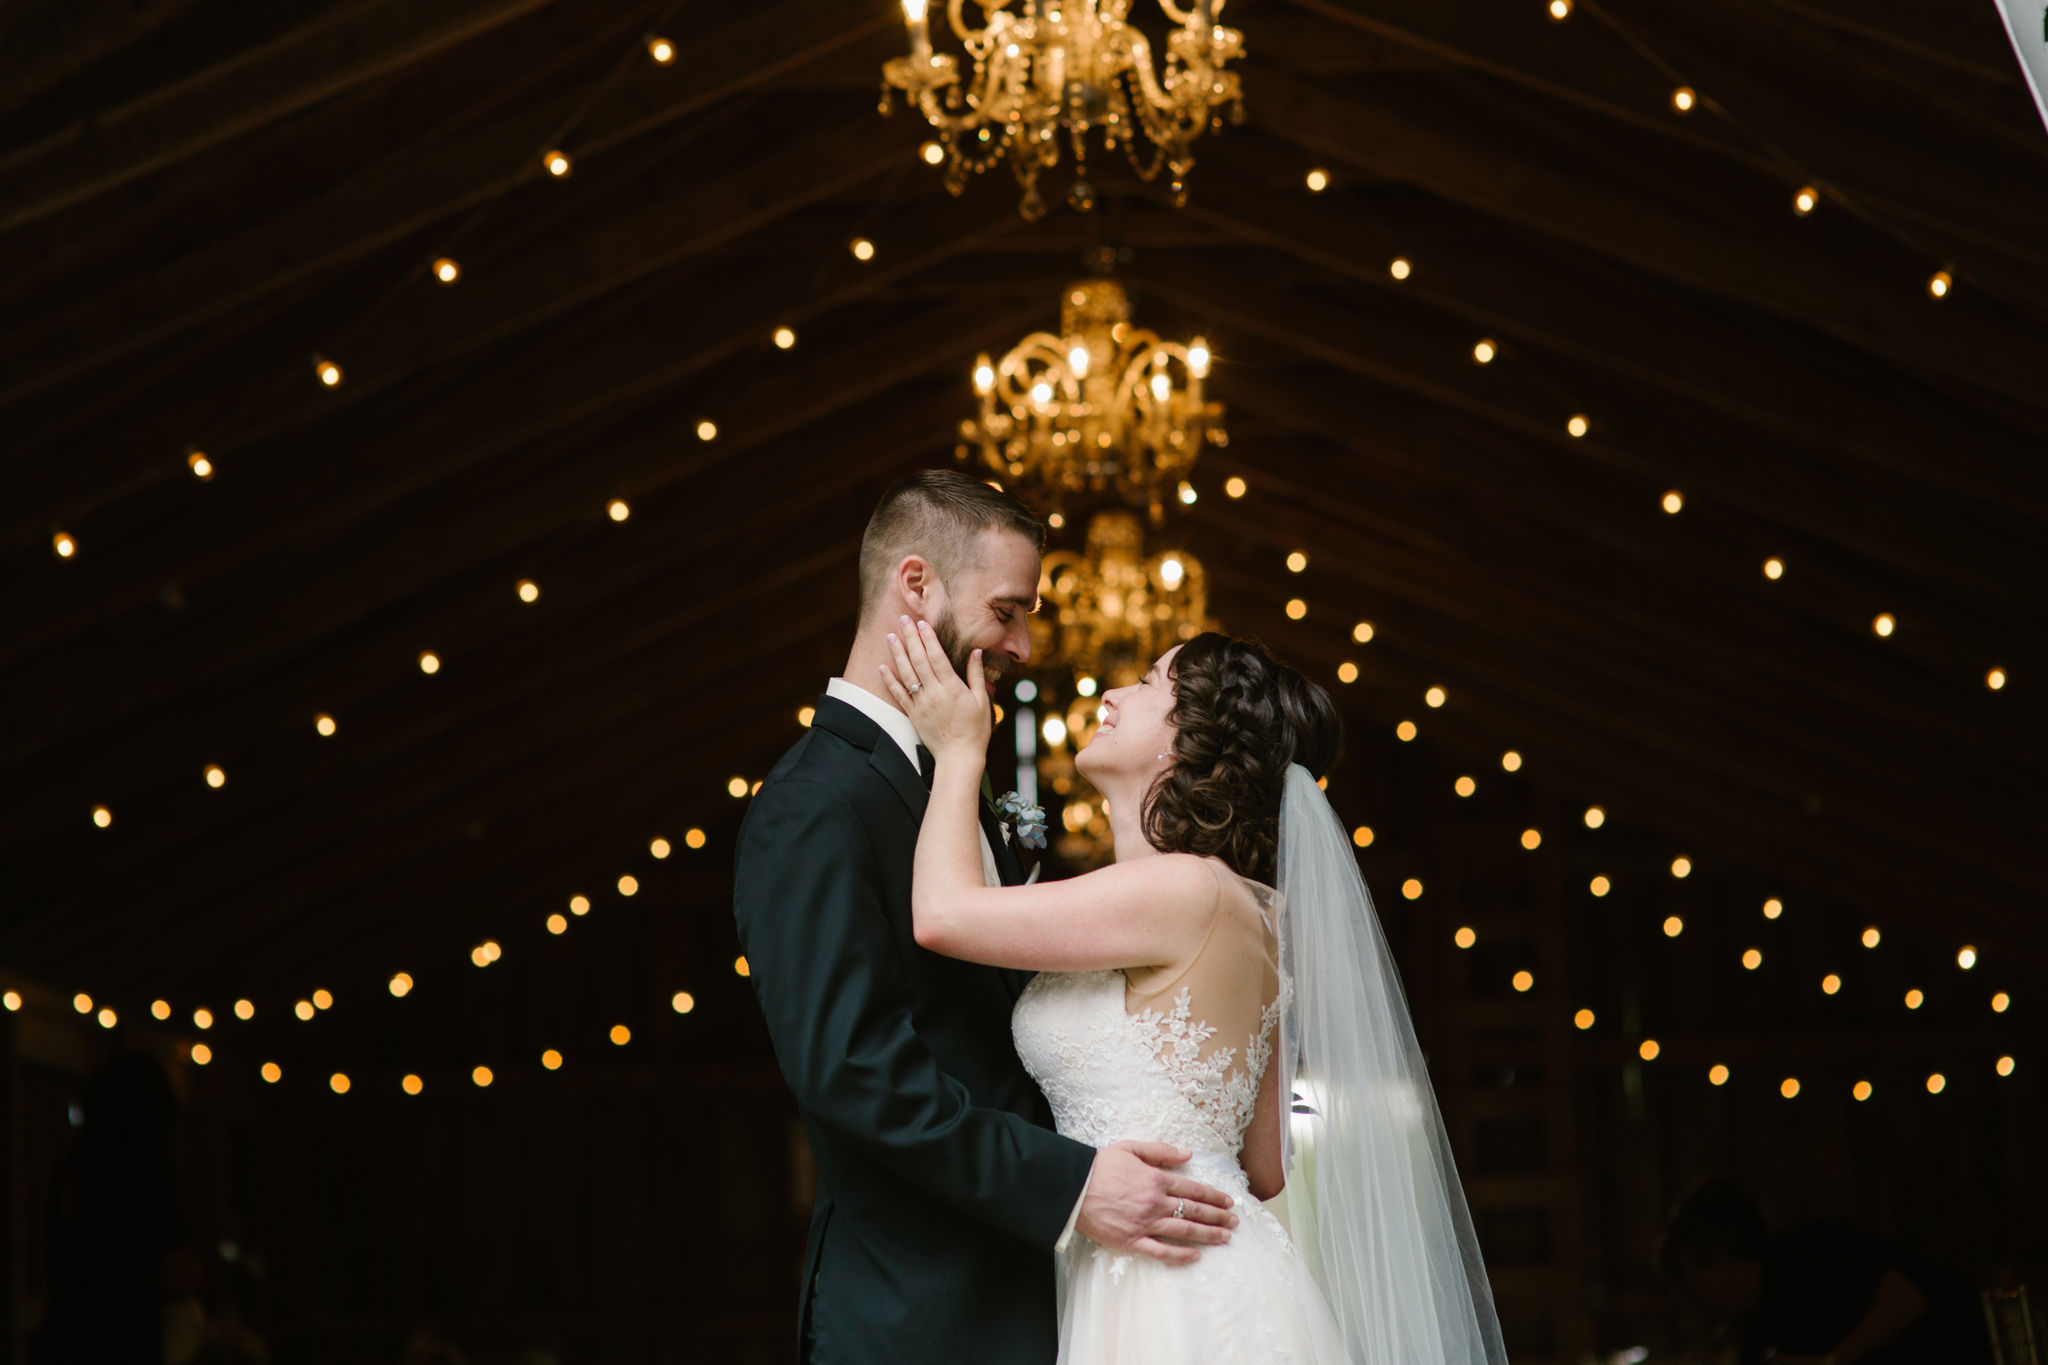 Kellsey&JasonWedding(Final)-172.jpg